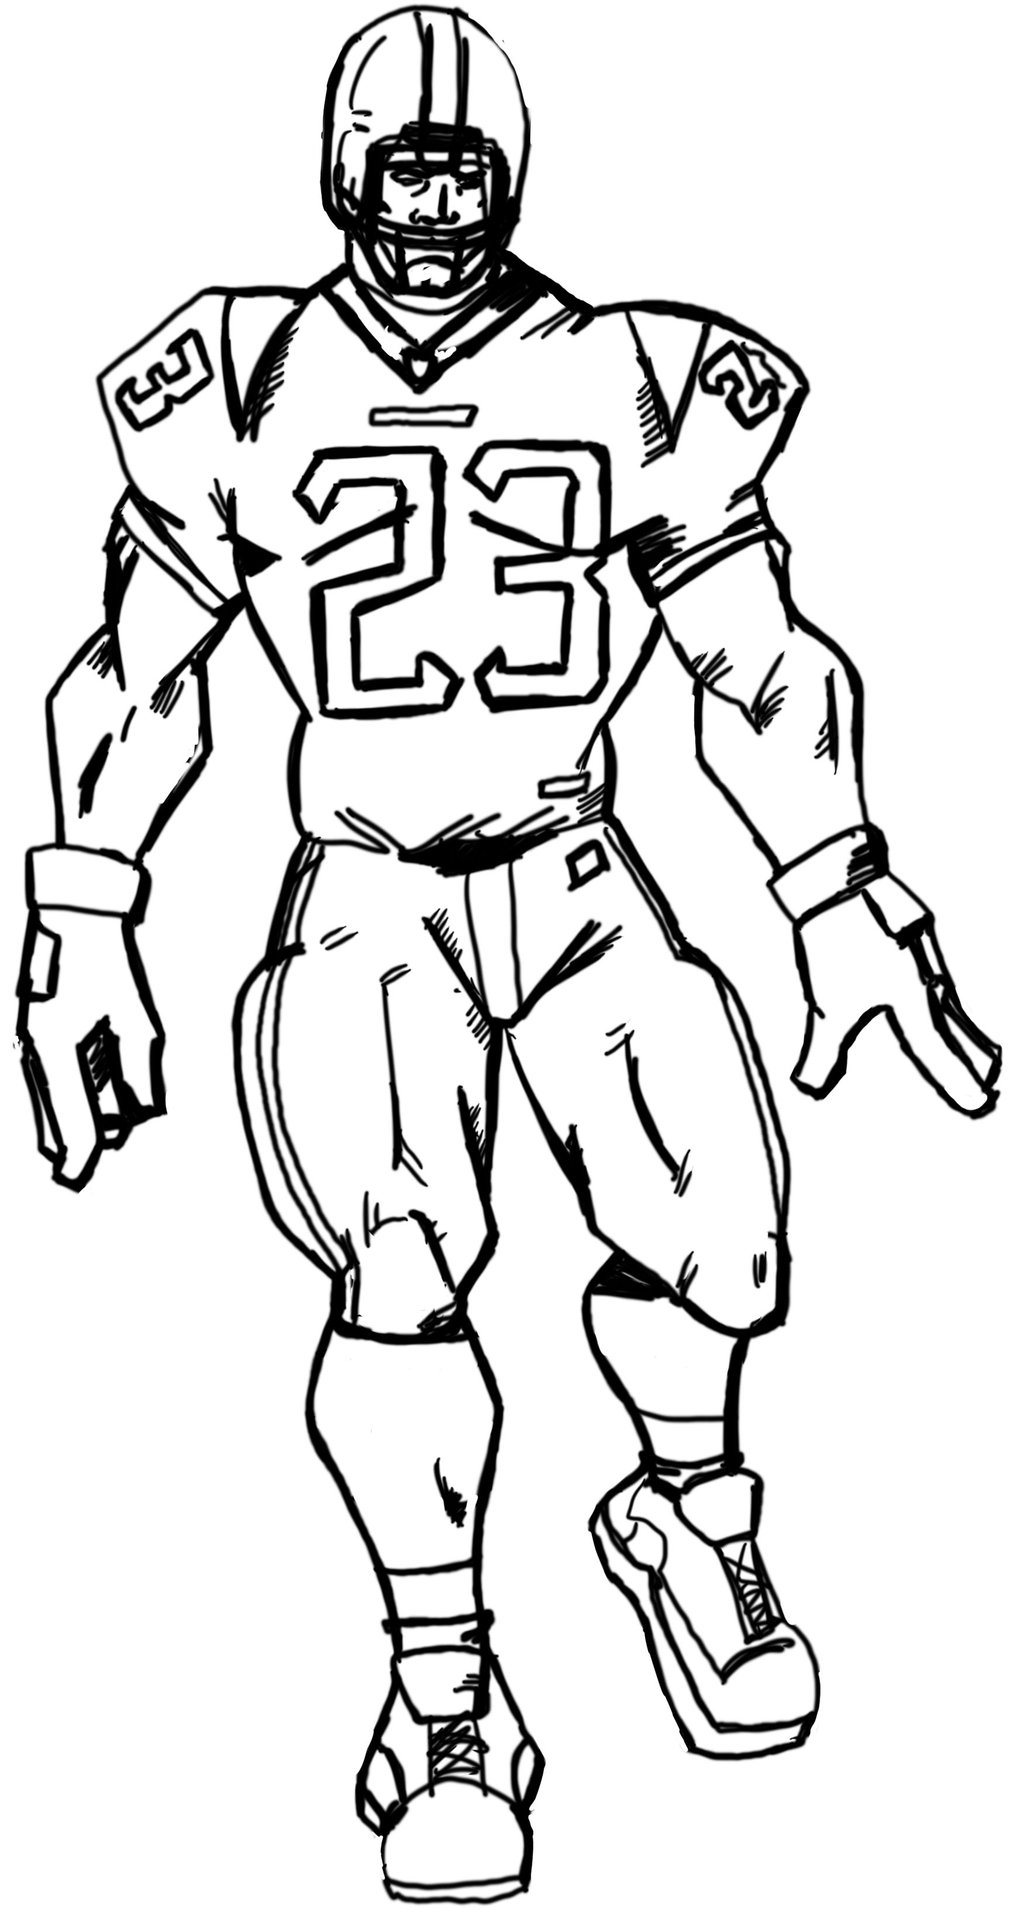 football player drawing football player sketch by nikew on deviantart football player drawing